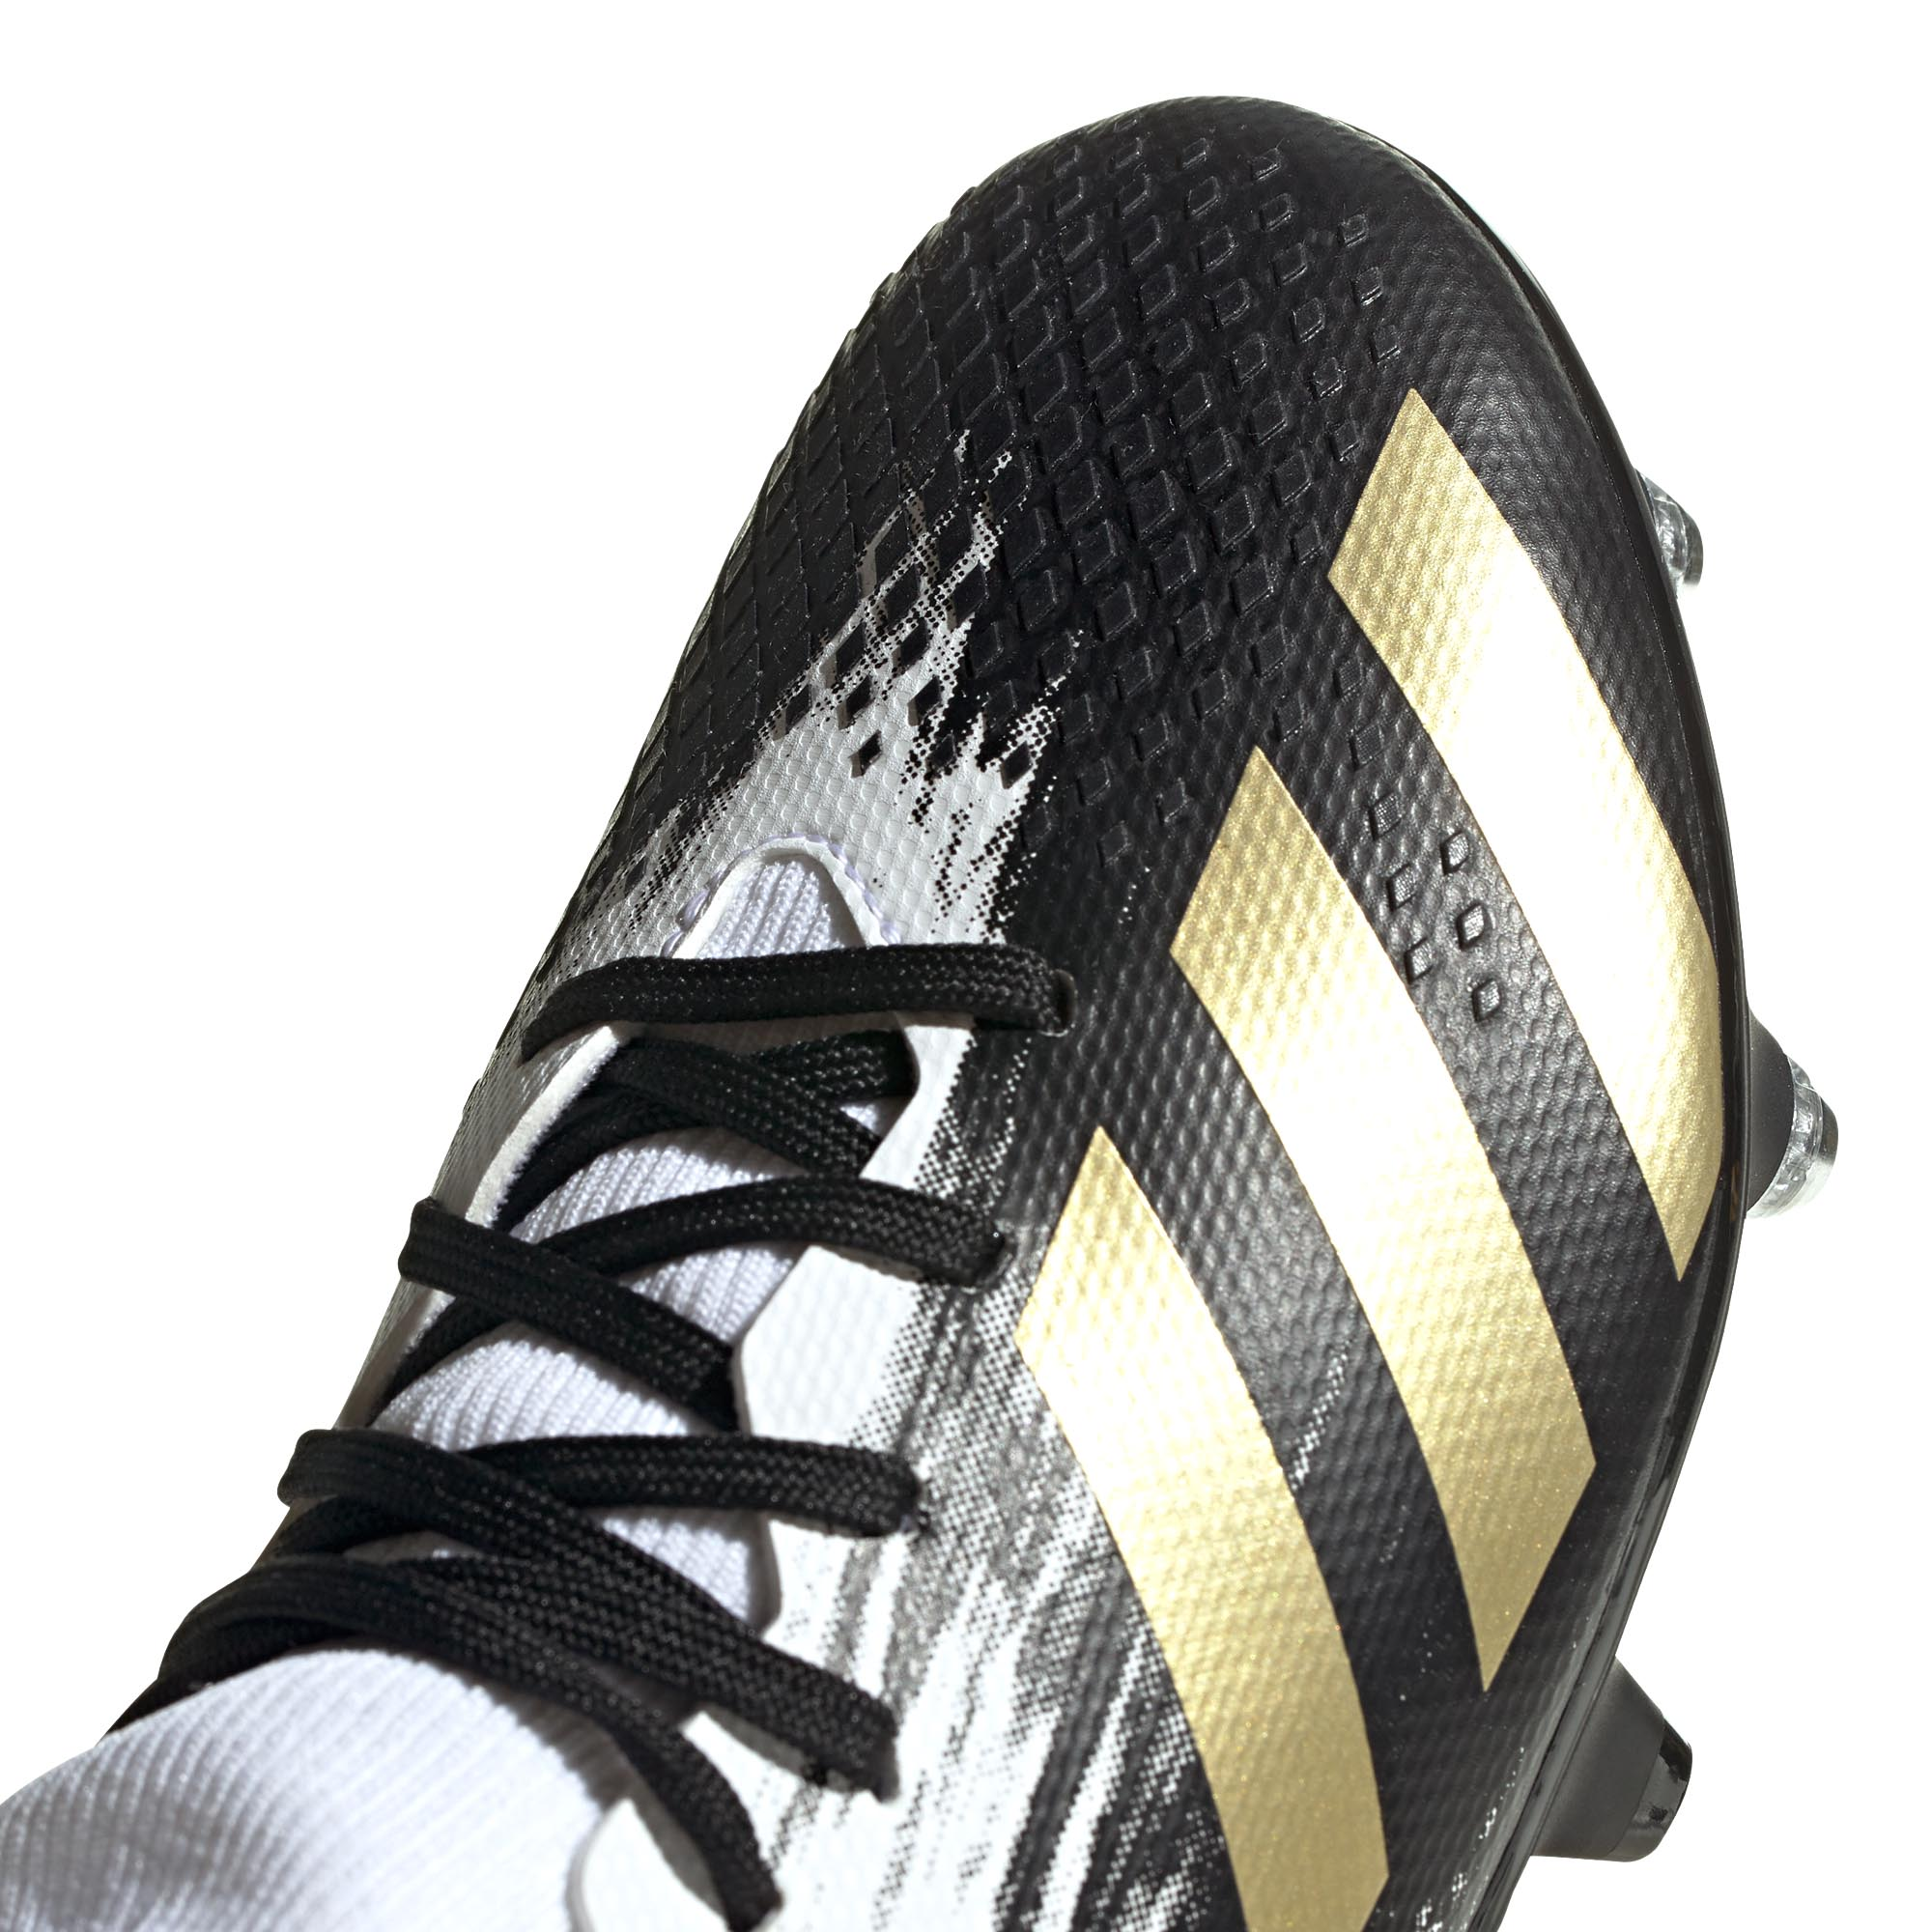 Adidas-Predator-20-3-SG-Soft-Ground-Junior-Enfants-Football-Boot-Inflight-Blanc miniature 9